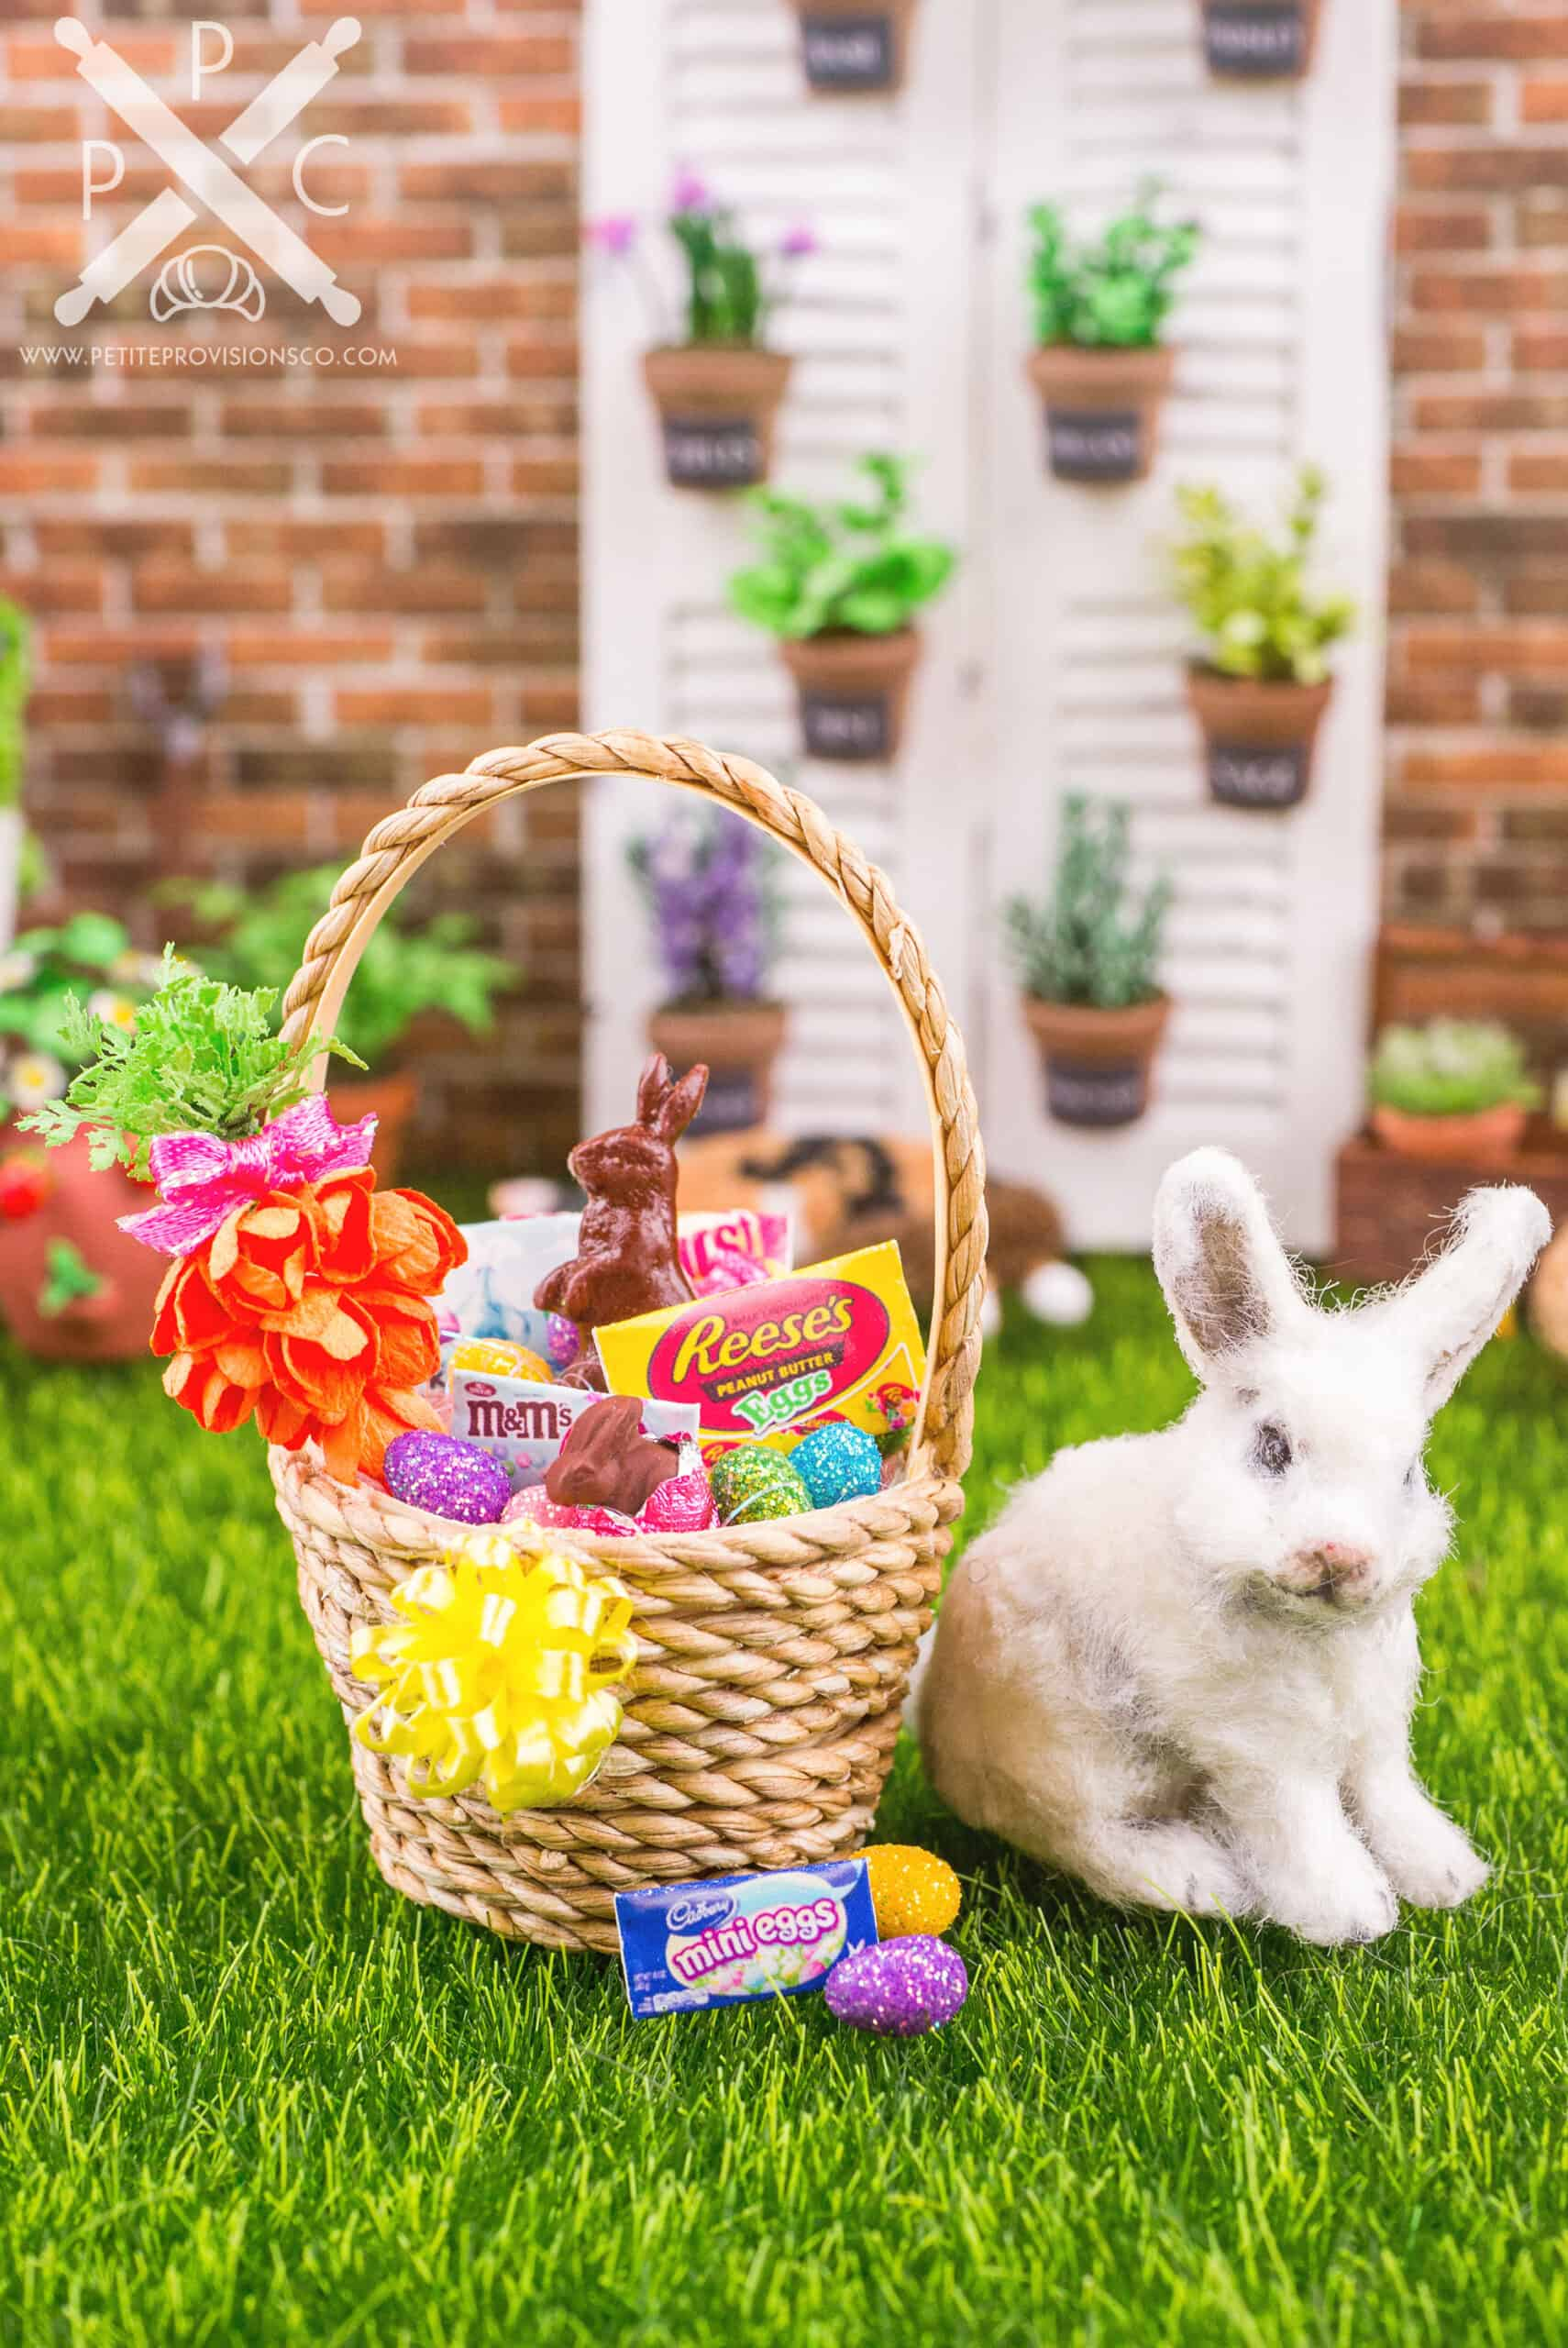 A one inch scale dollhouse miniature Easter basket with Easter candies and chocolate bunnies